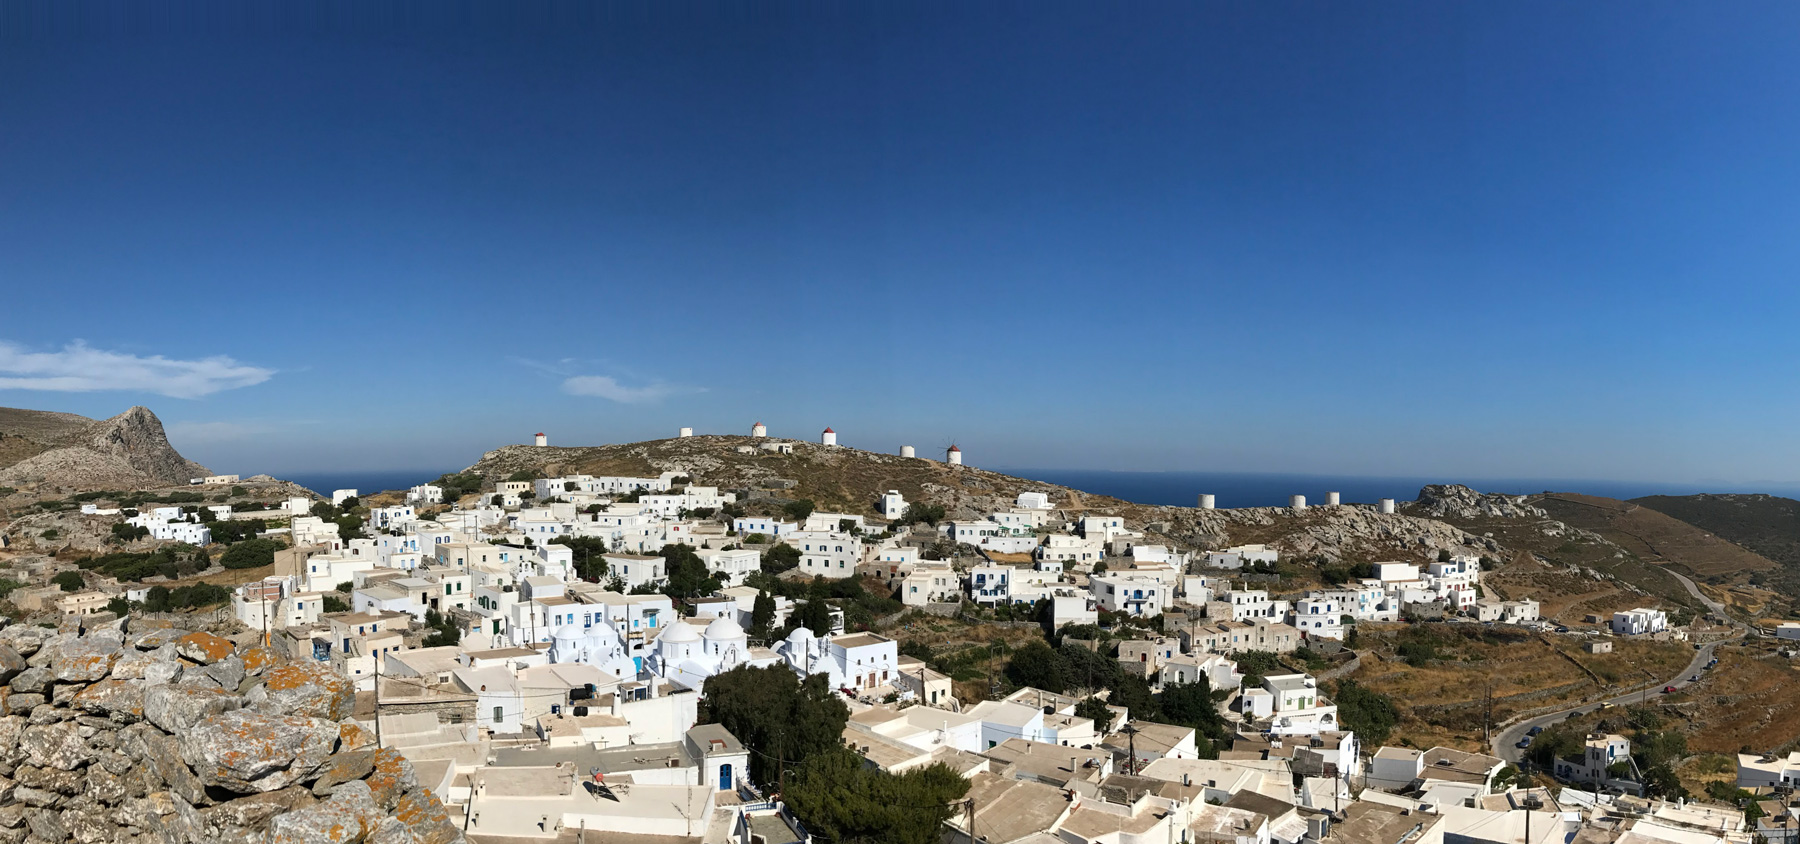 Homepage-slider-View-of-Chora-town-Amorgos